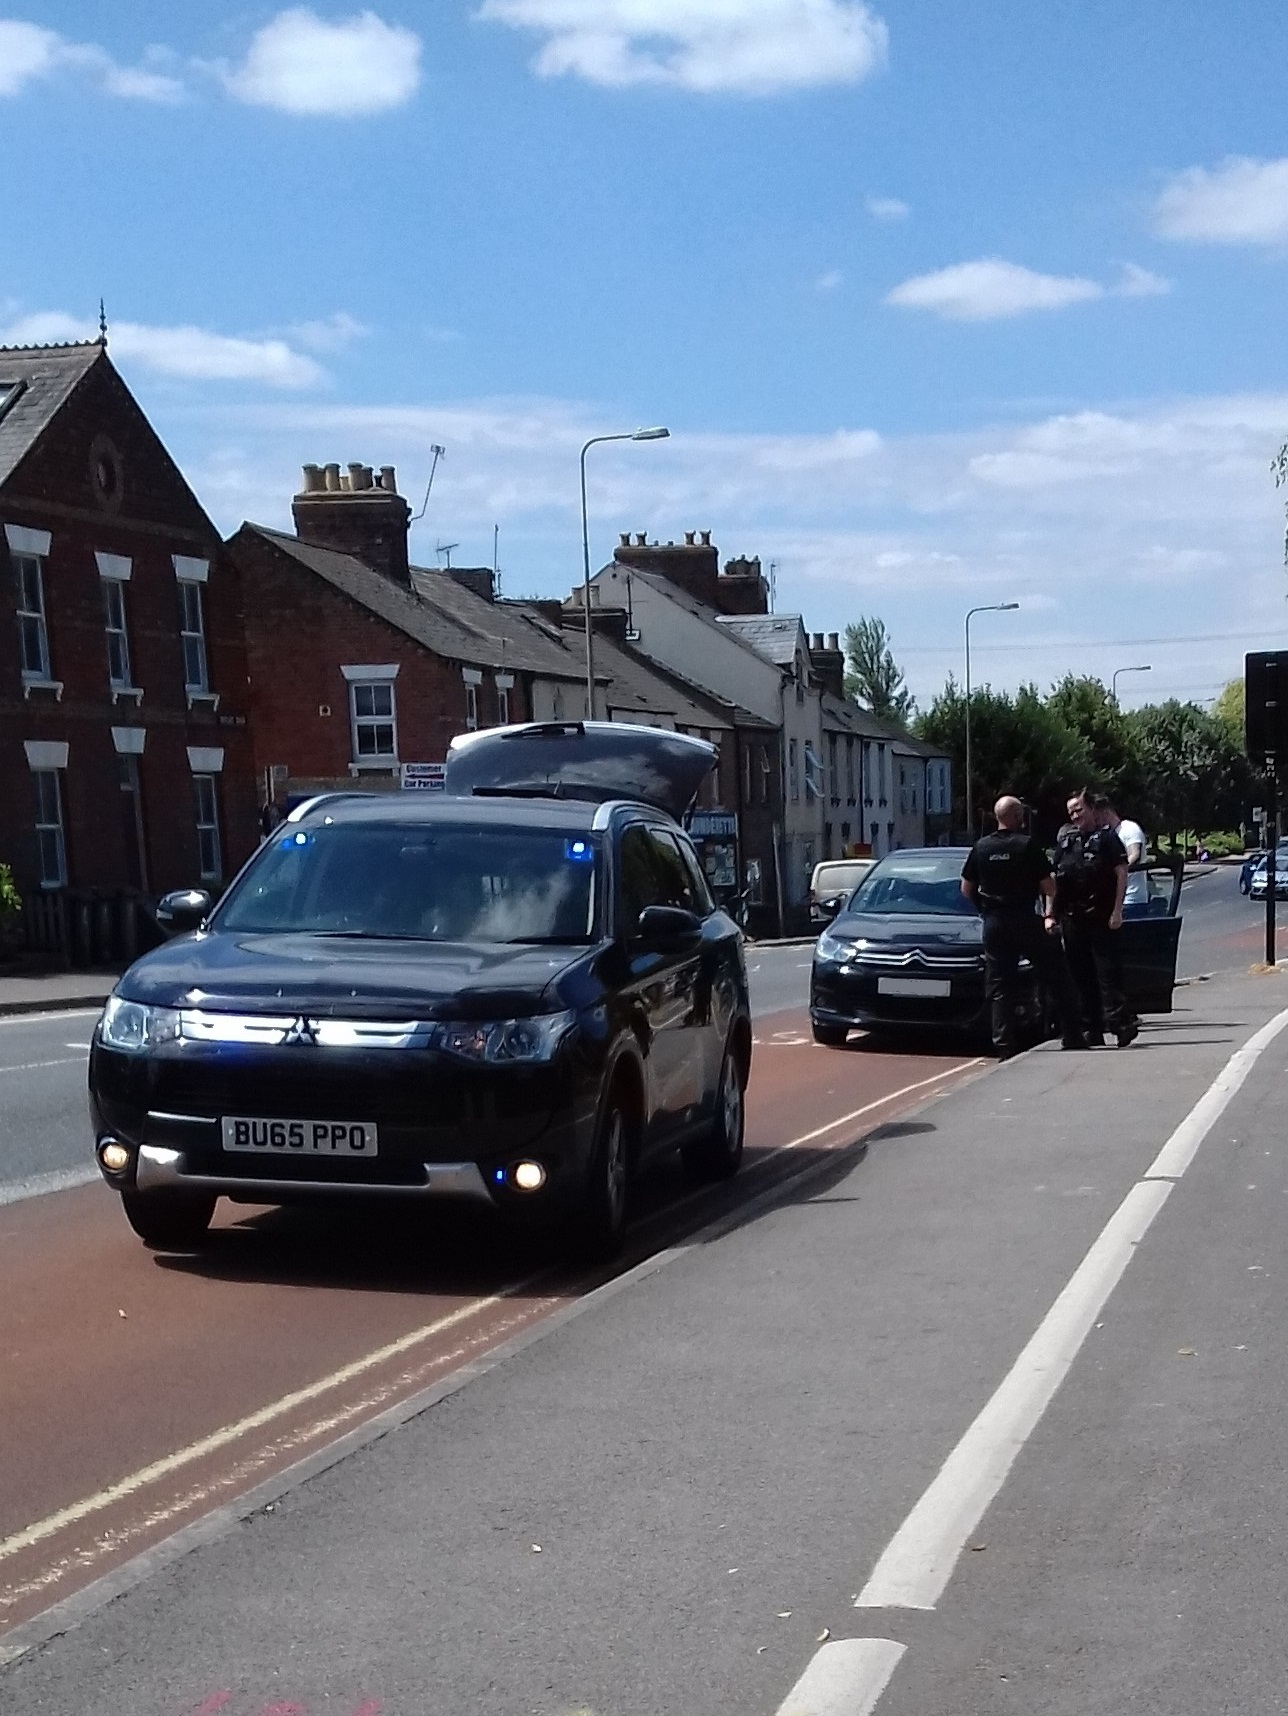 Police in an unmarked vehicle stopped a car on Botley Road, Oxford, on Tuessday, July 10, 2018. Picture: Pete Hughes